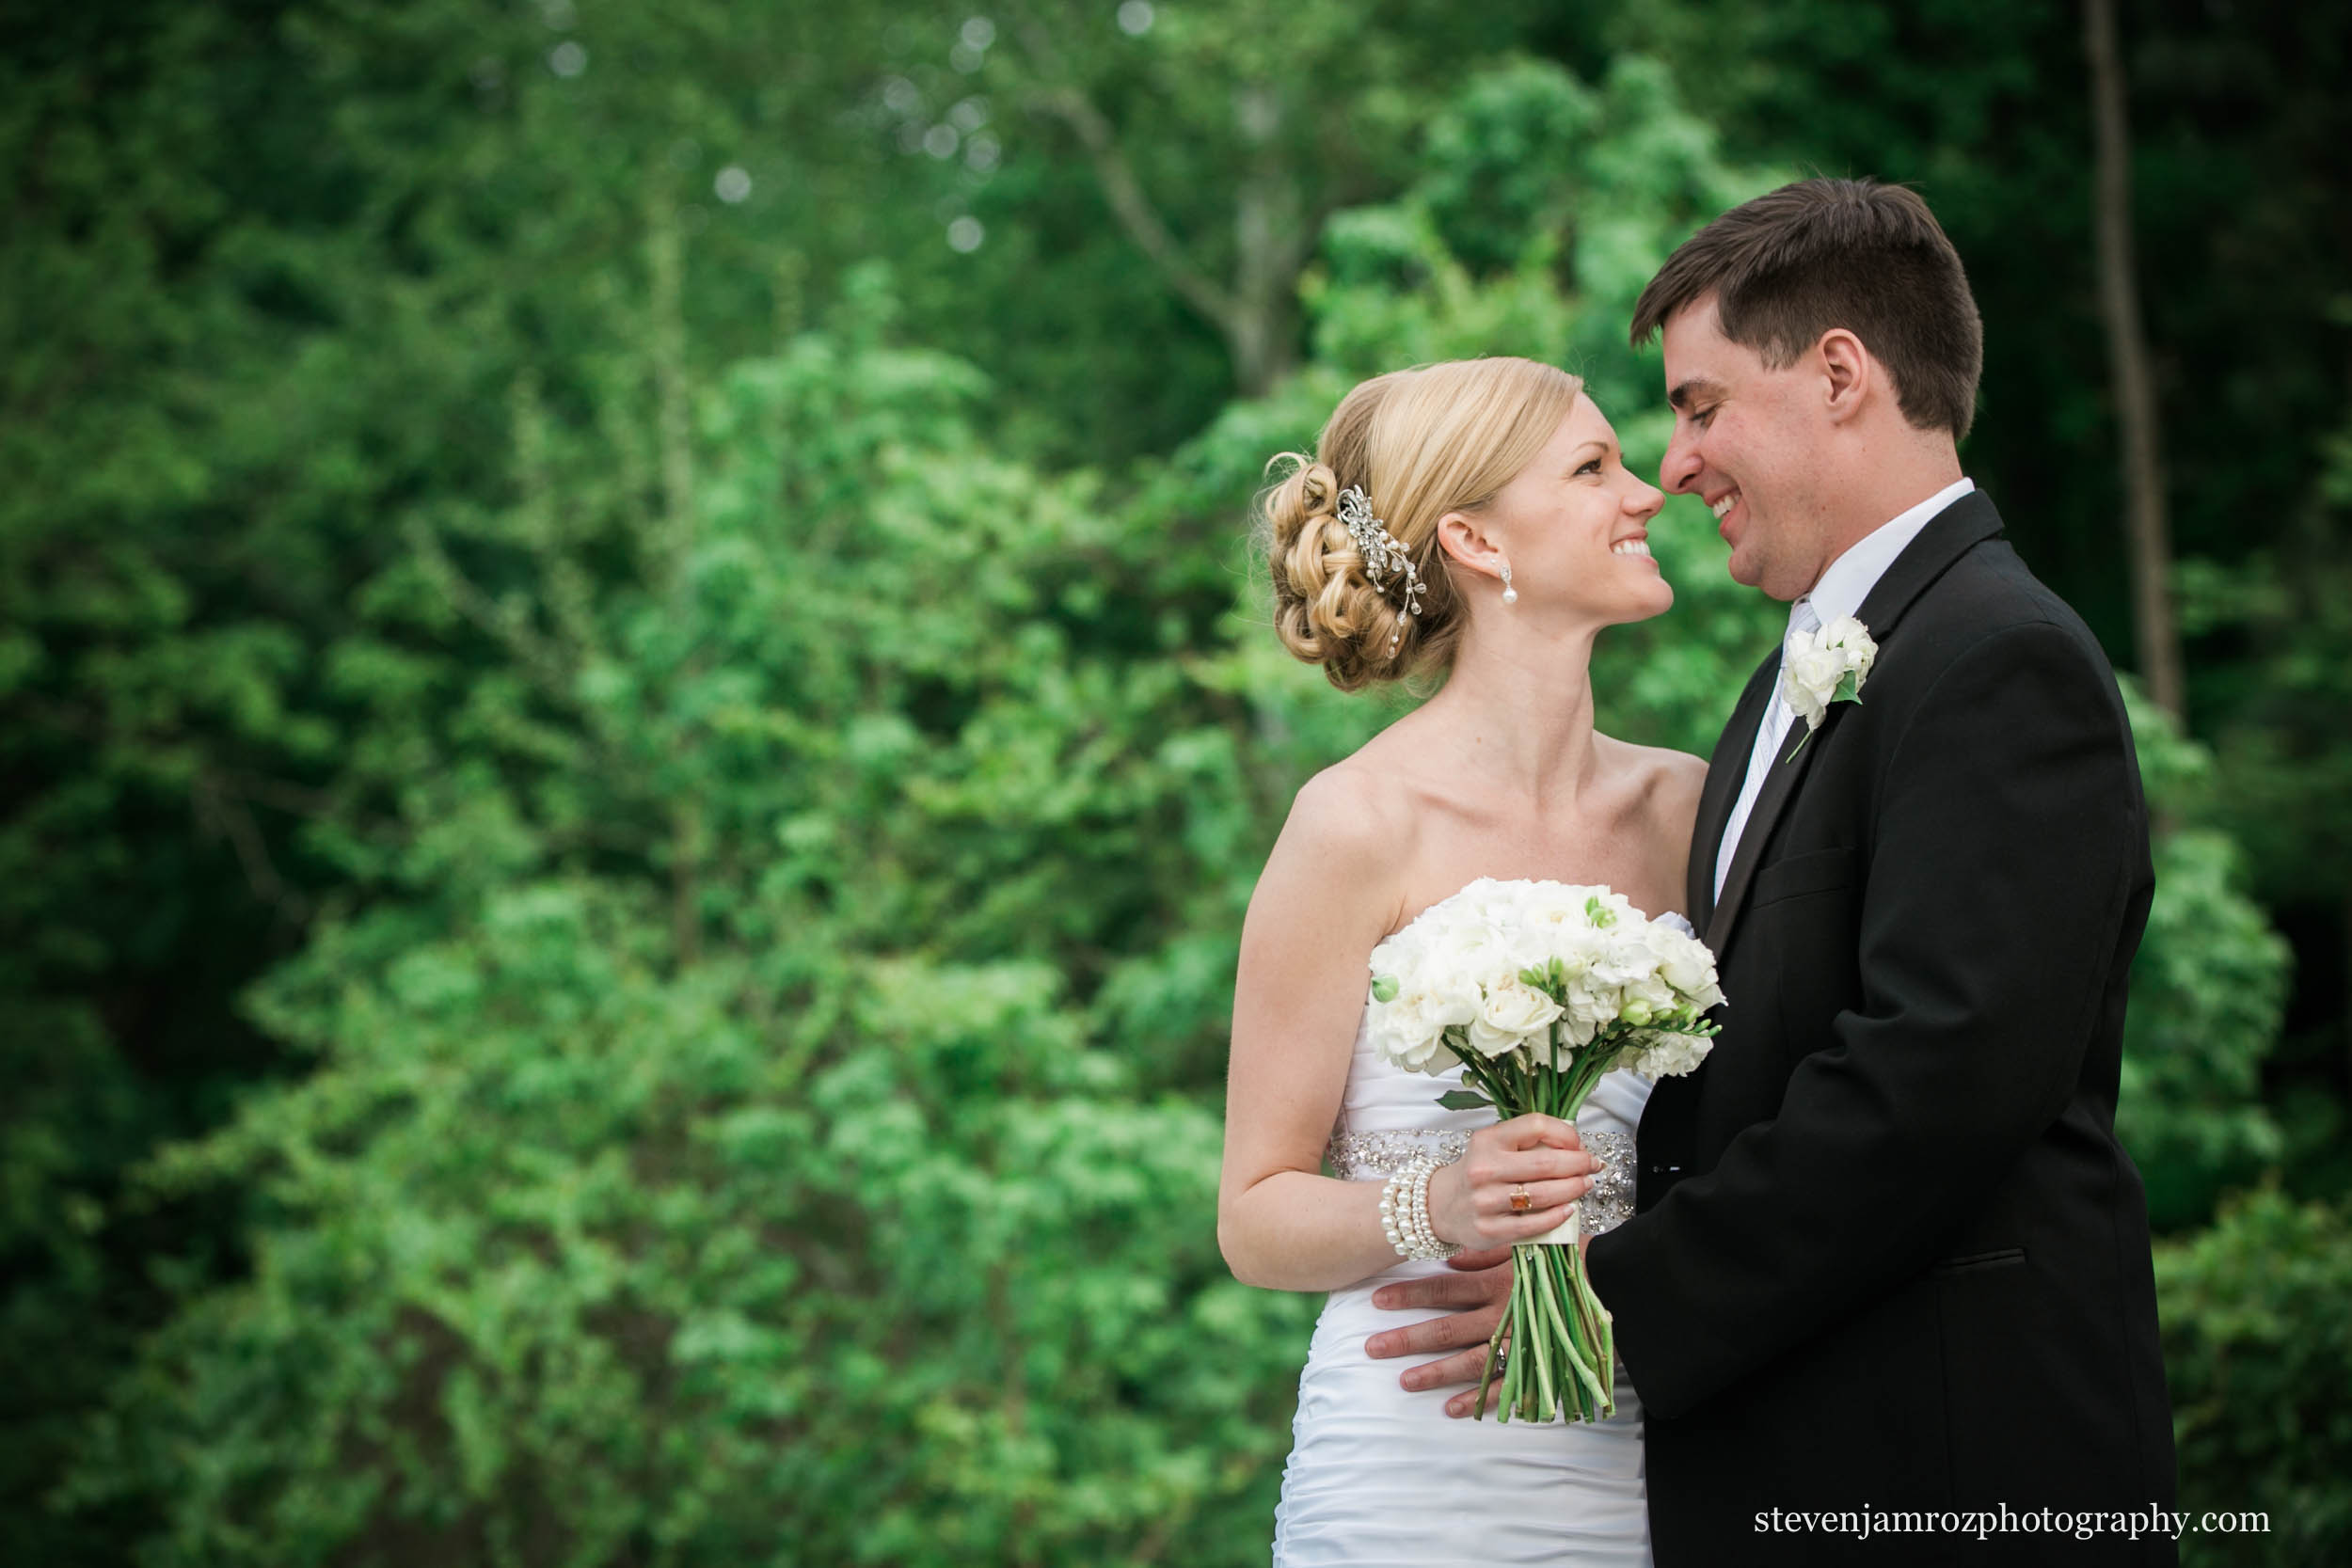 north-raleigh-wedding-couple-steven-jamroz-photography-0367.jpg